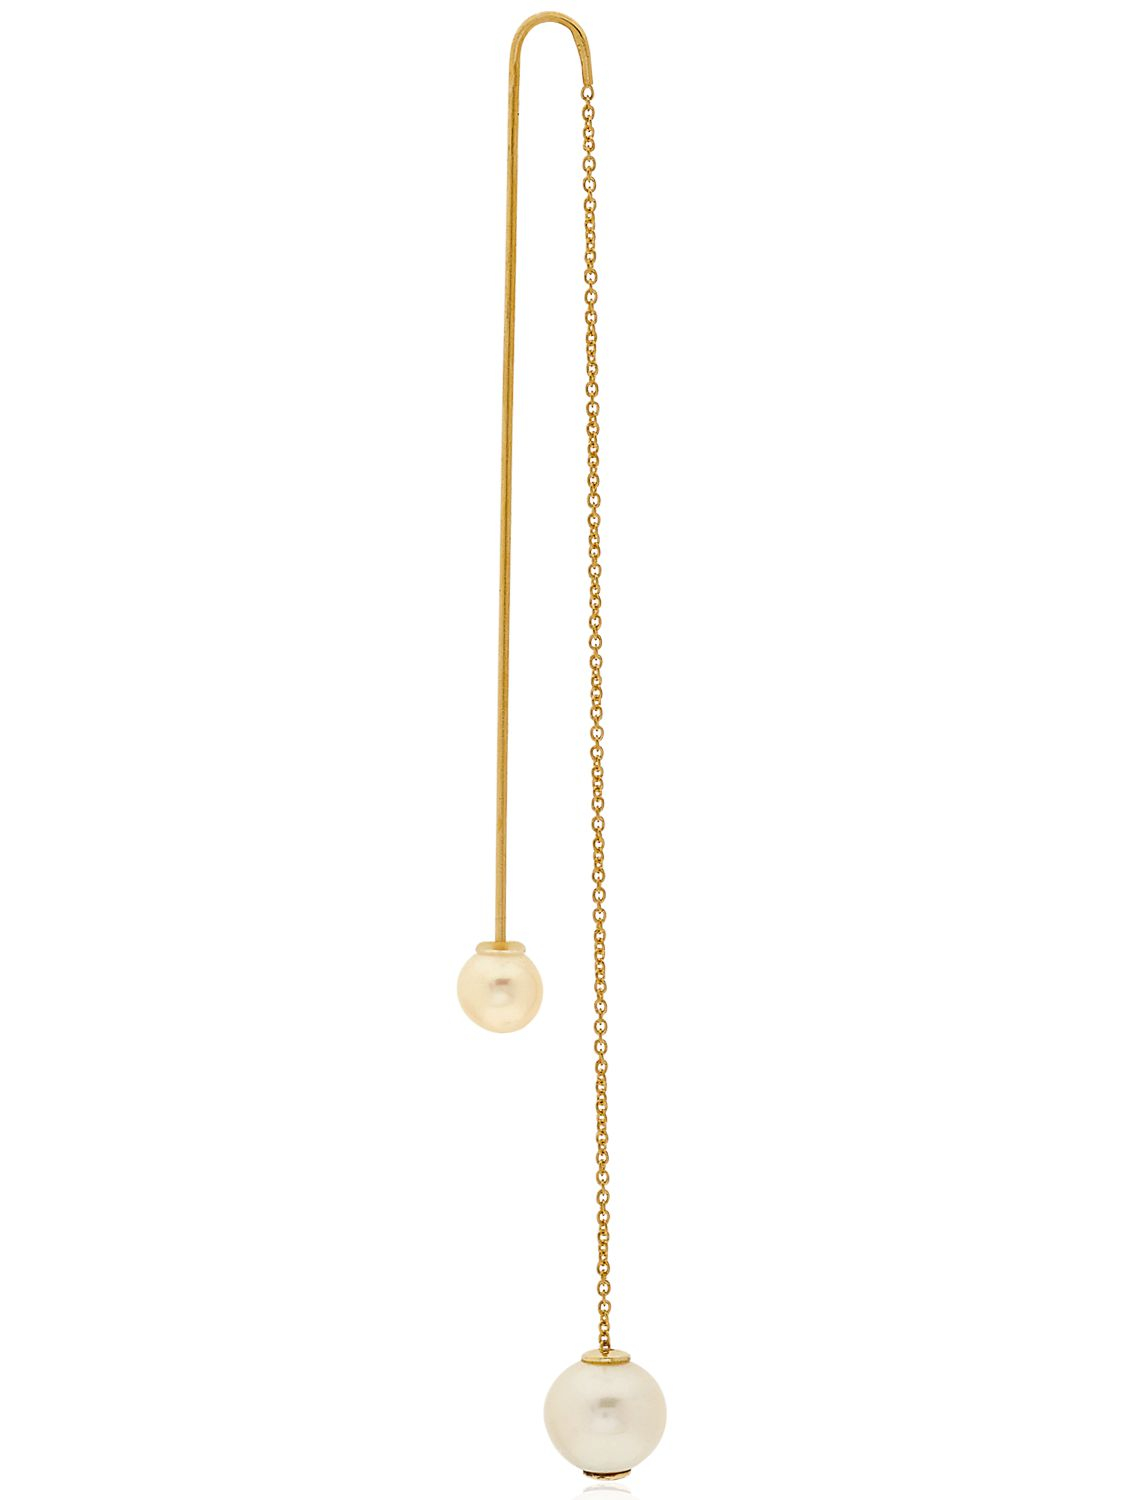 18kt gold Fishing For Compliments pearl earring - Metallic Delfina Delettrez xiiKHIpAo